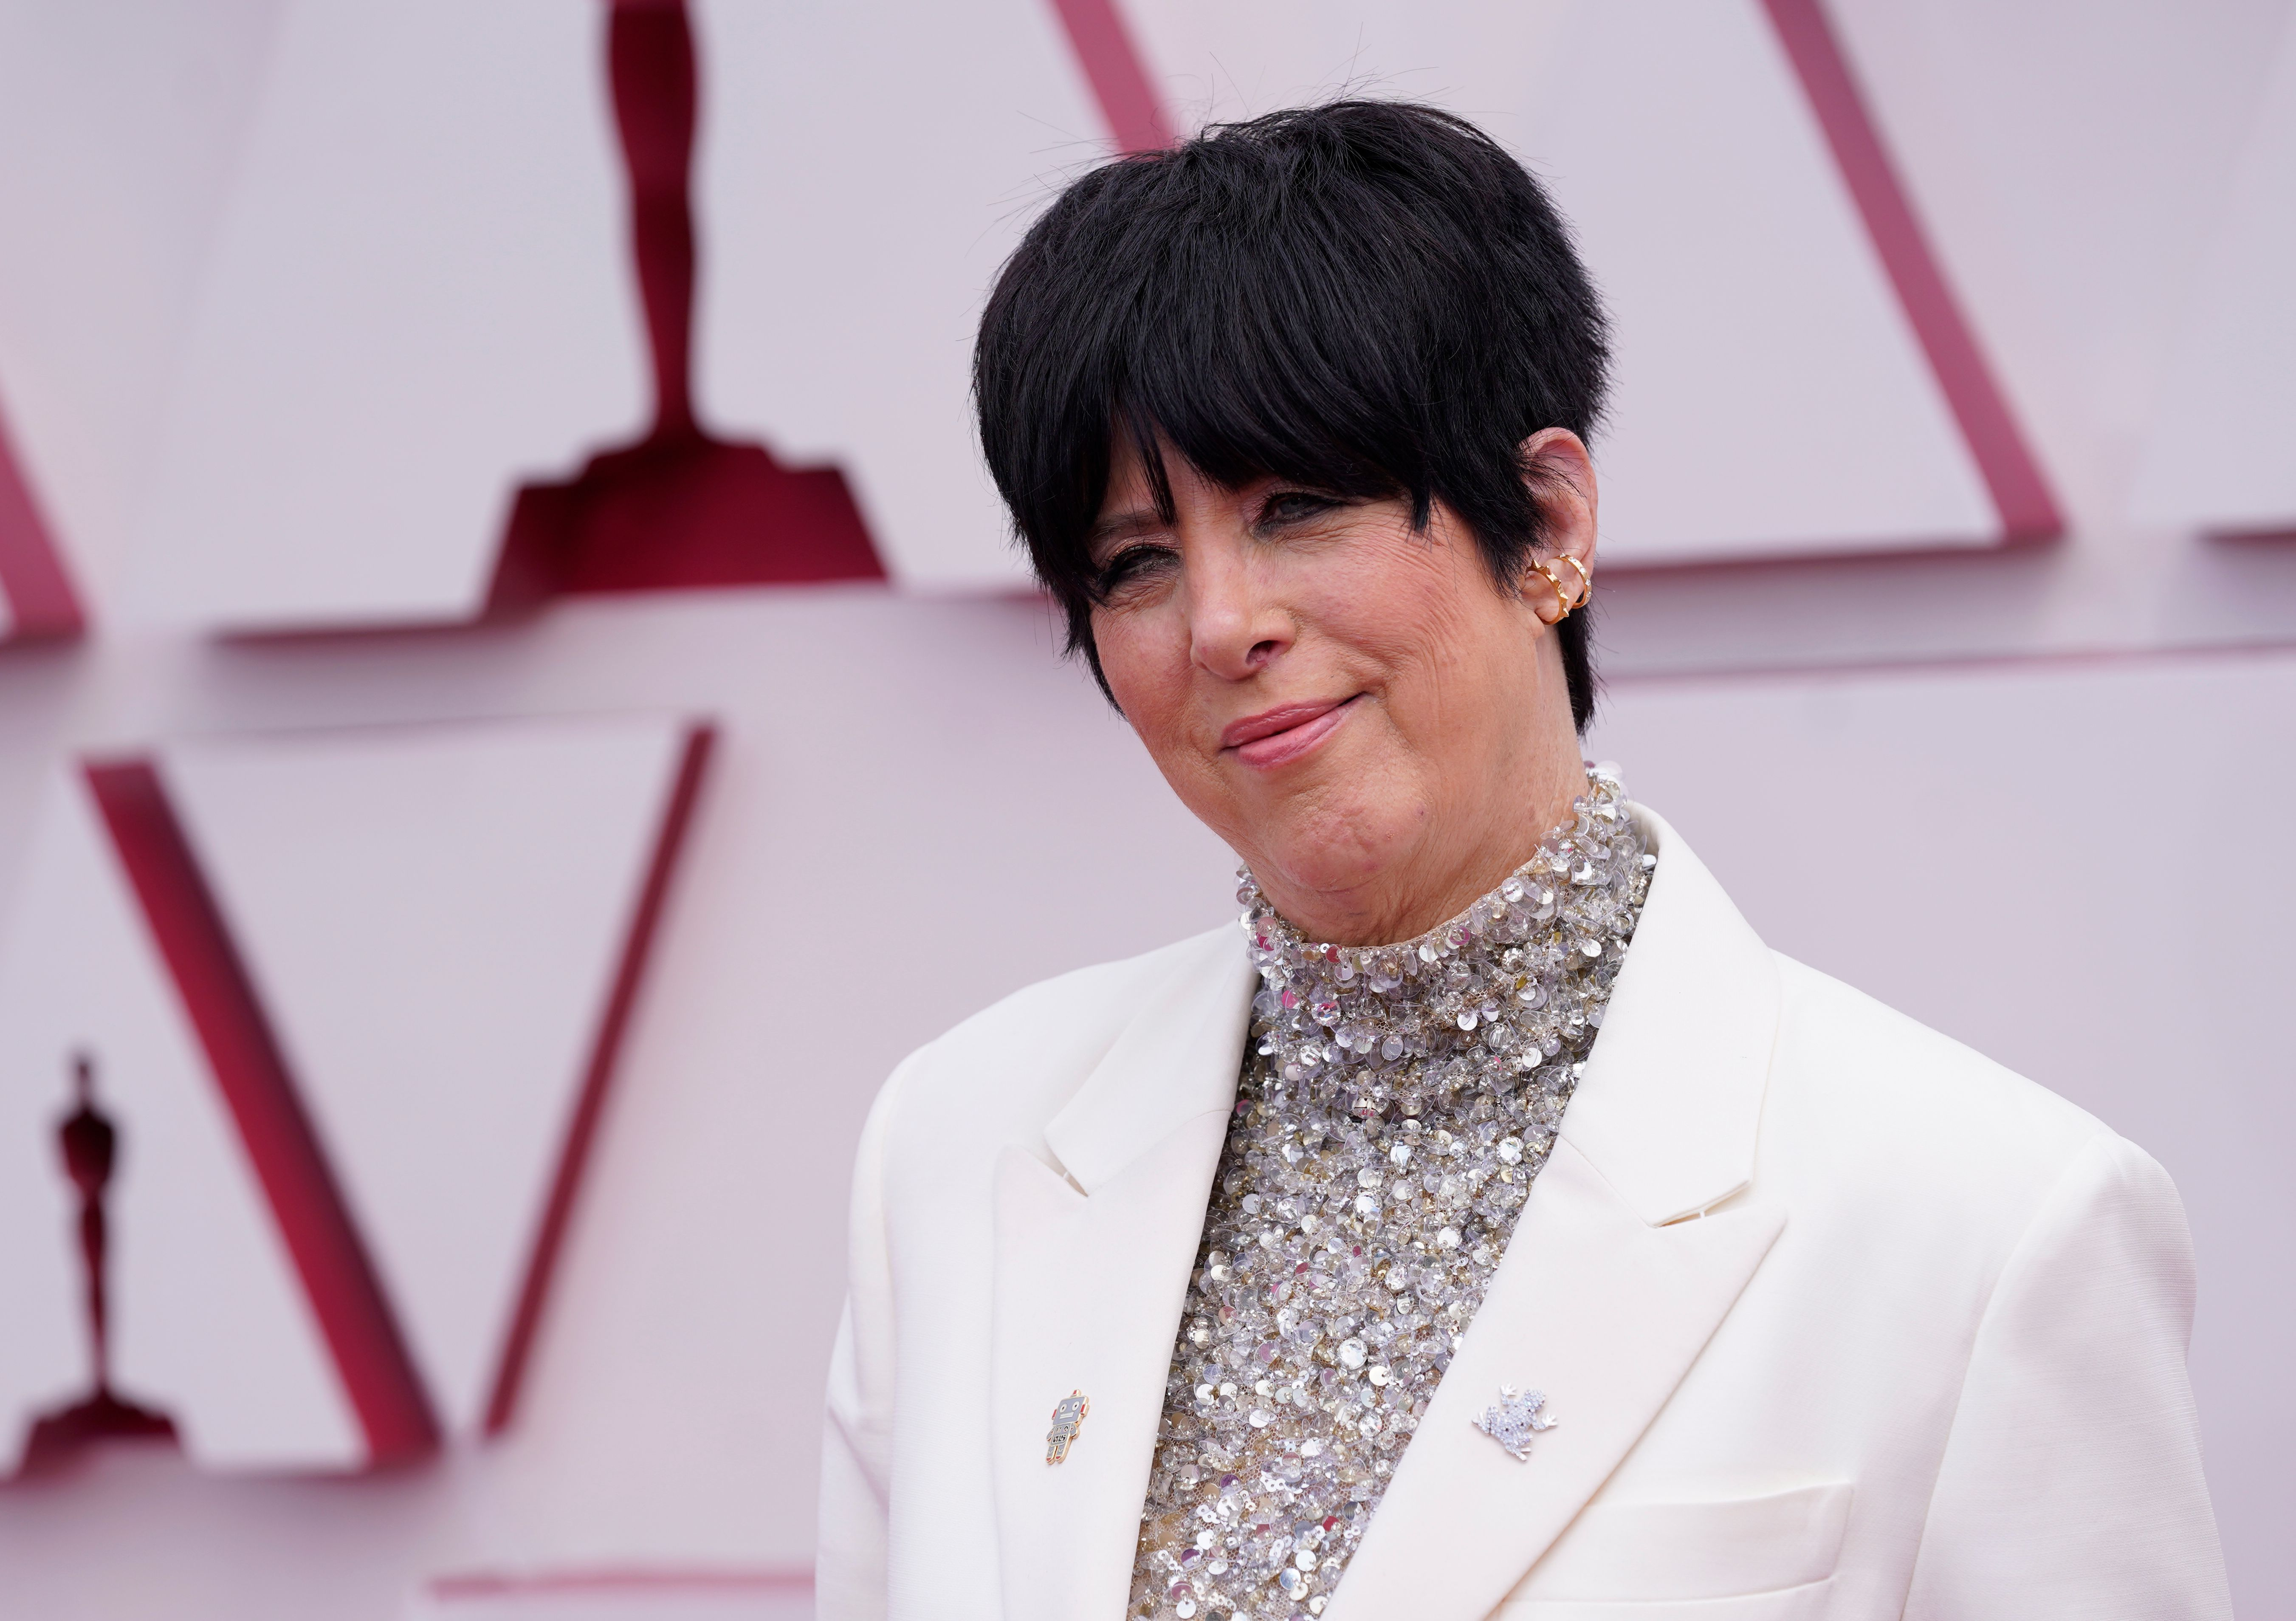 Diane Warren arriving at the Oscars at Union Station in Los Angeles on April 25. (AP Photo/Chris Pizzello, Pool, File)